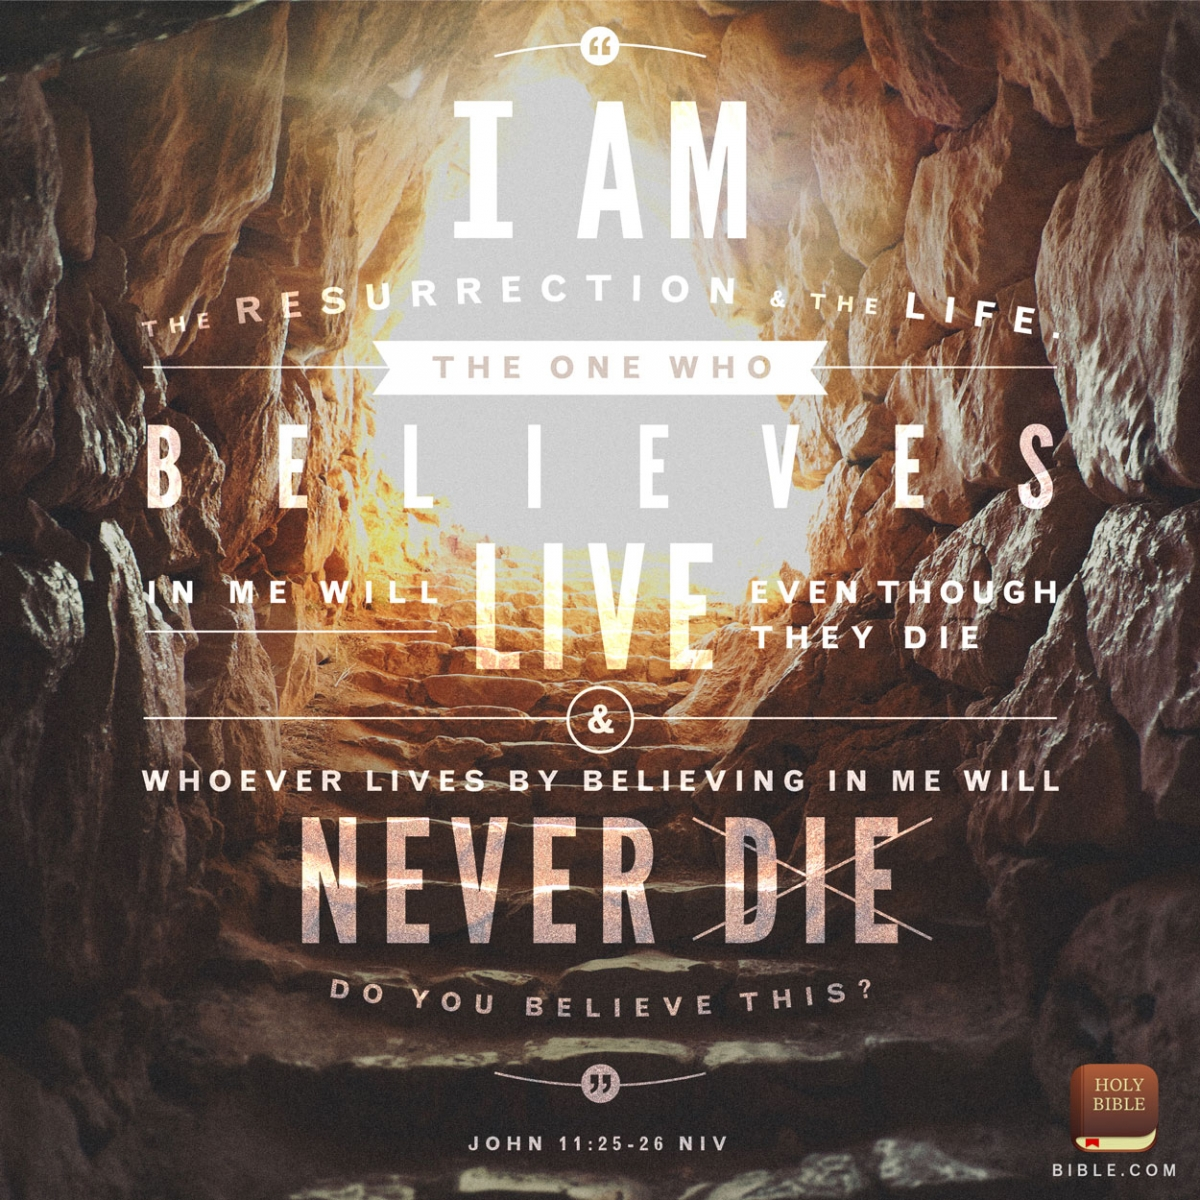 The Resurrection and Life